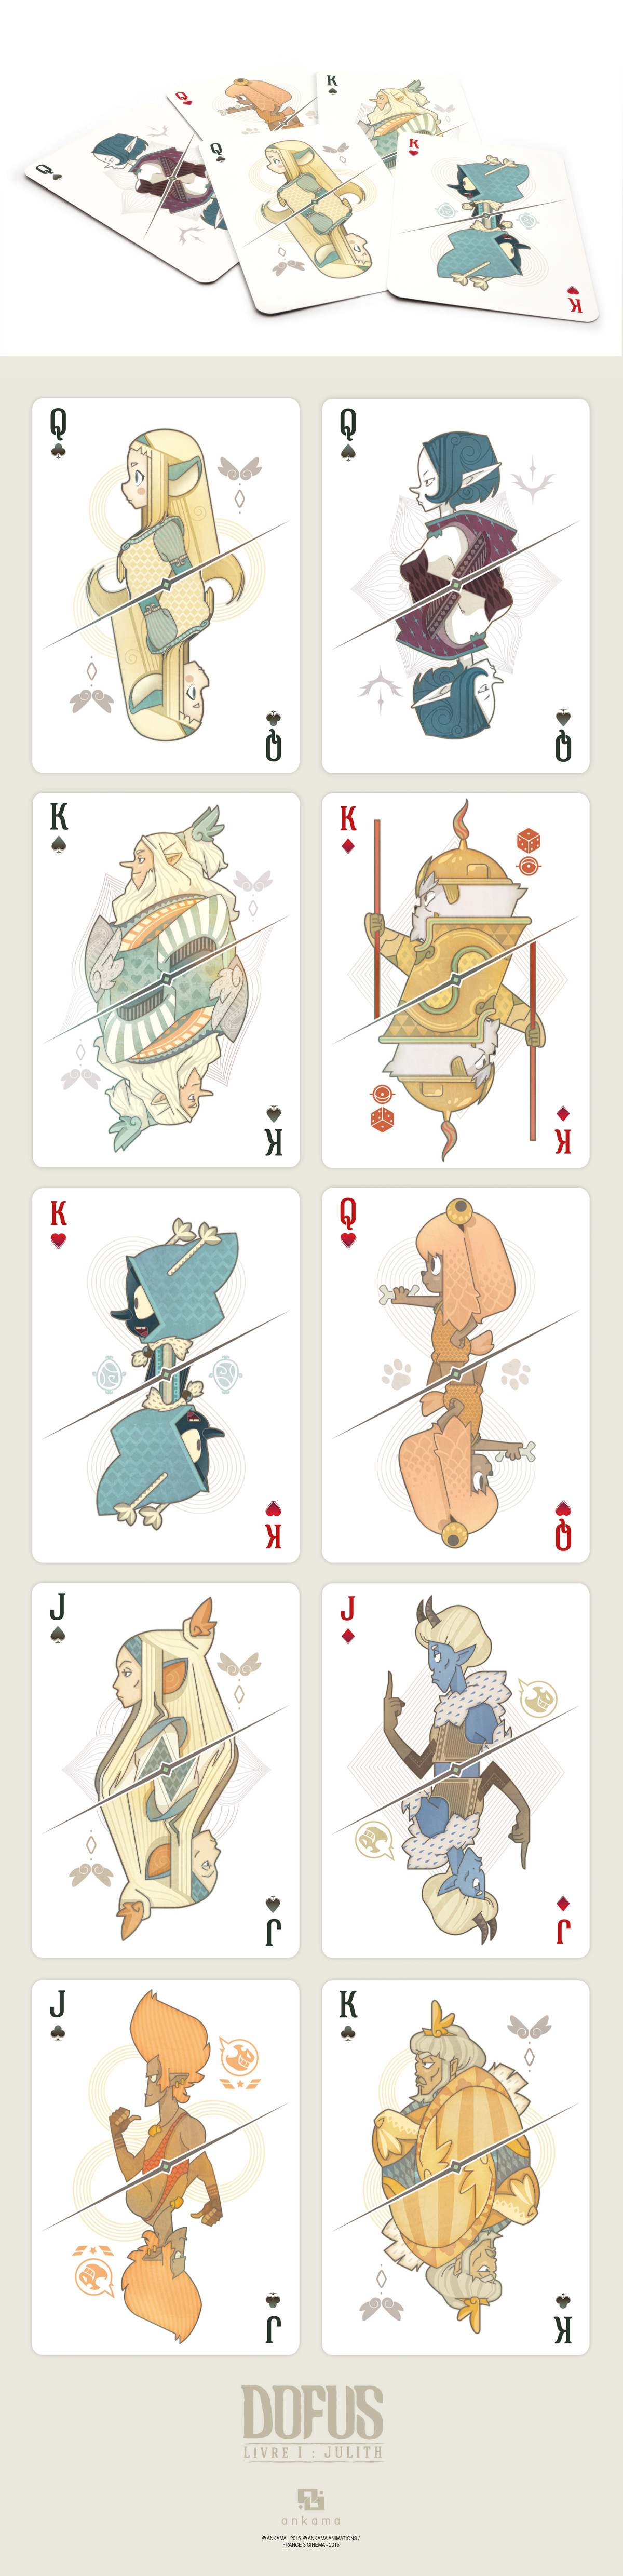 Playing Cards - DOFUS FILM